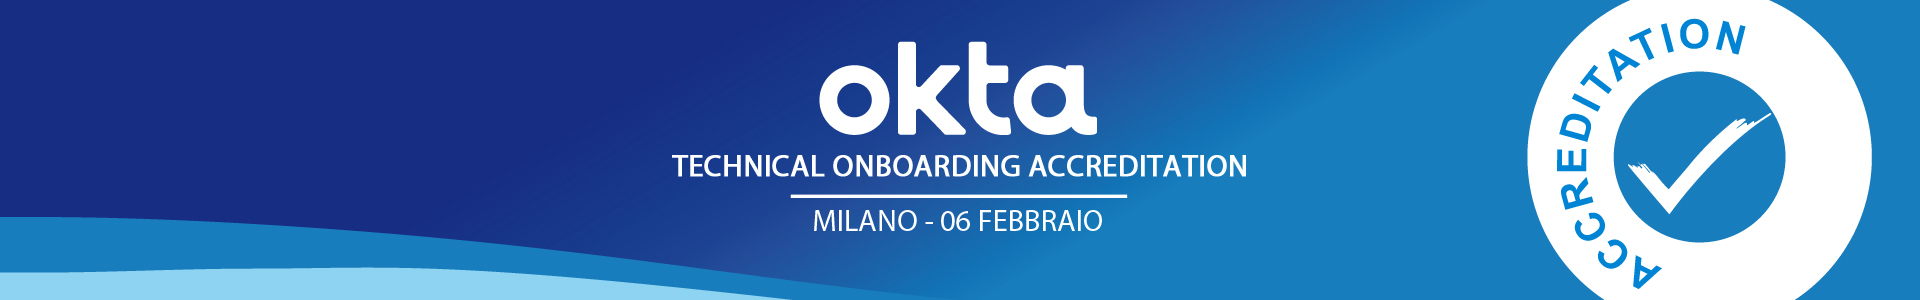 Okta Technical Onboarding Accreditation